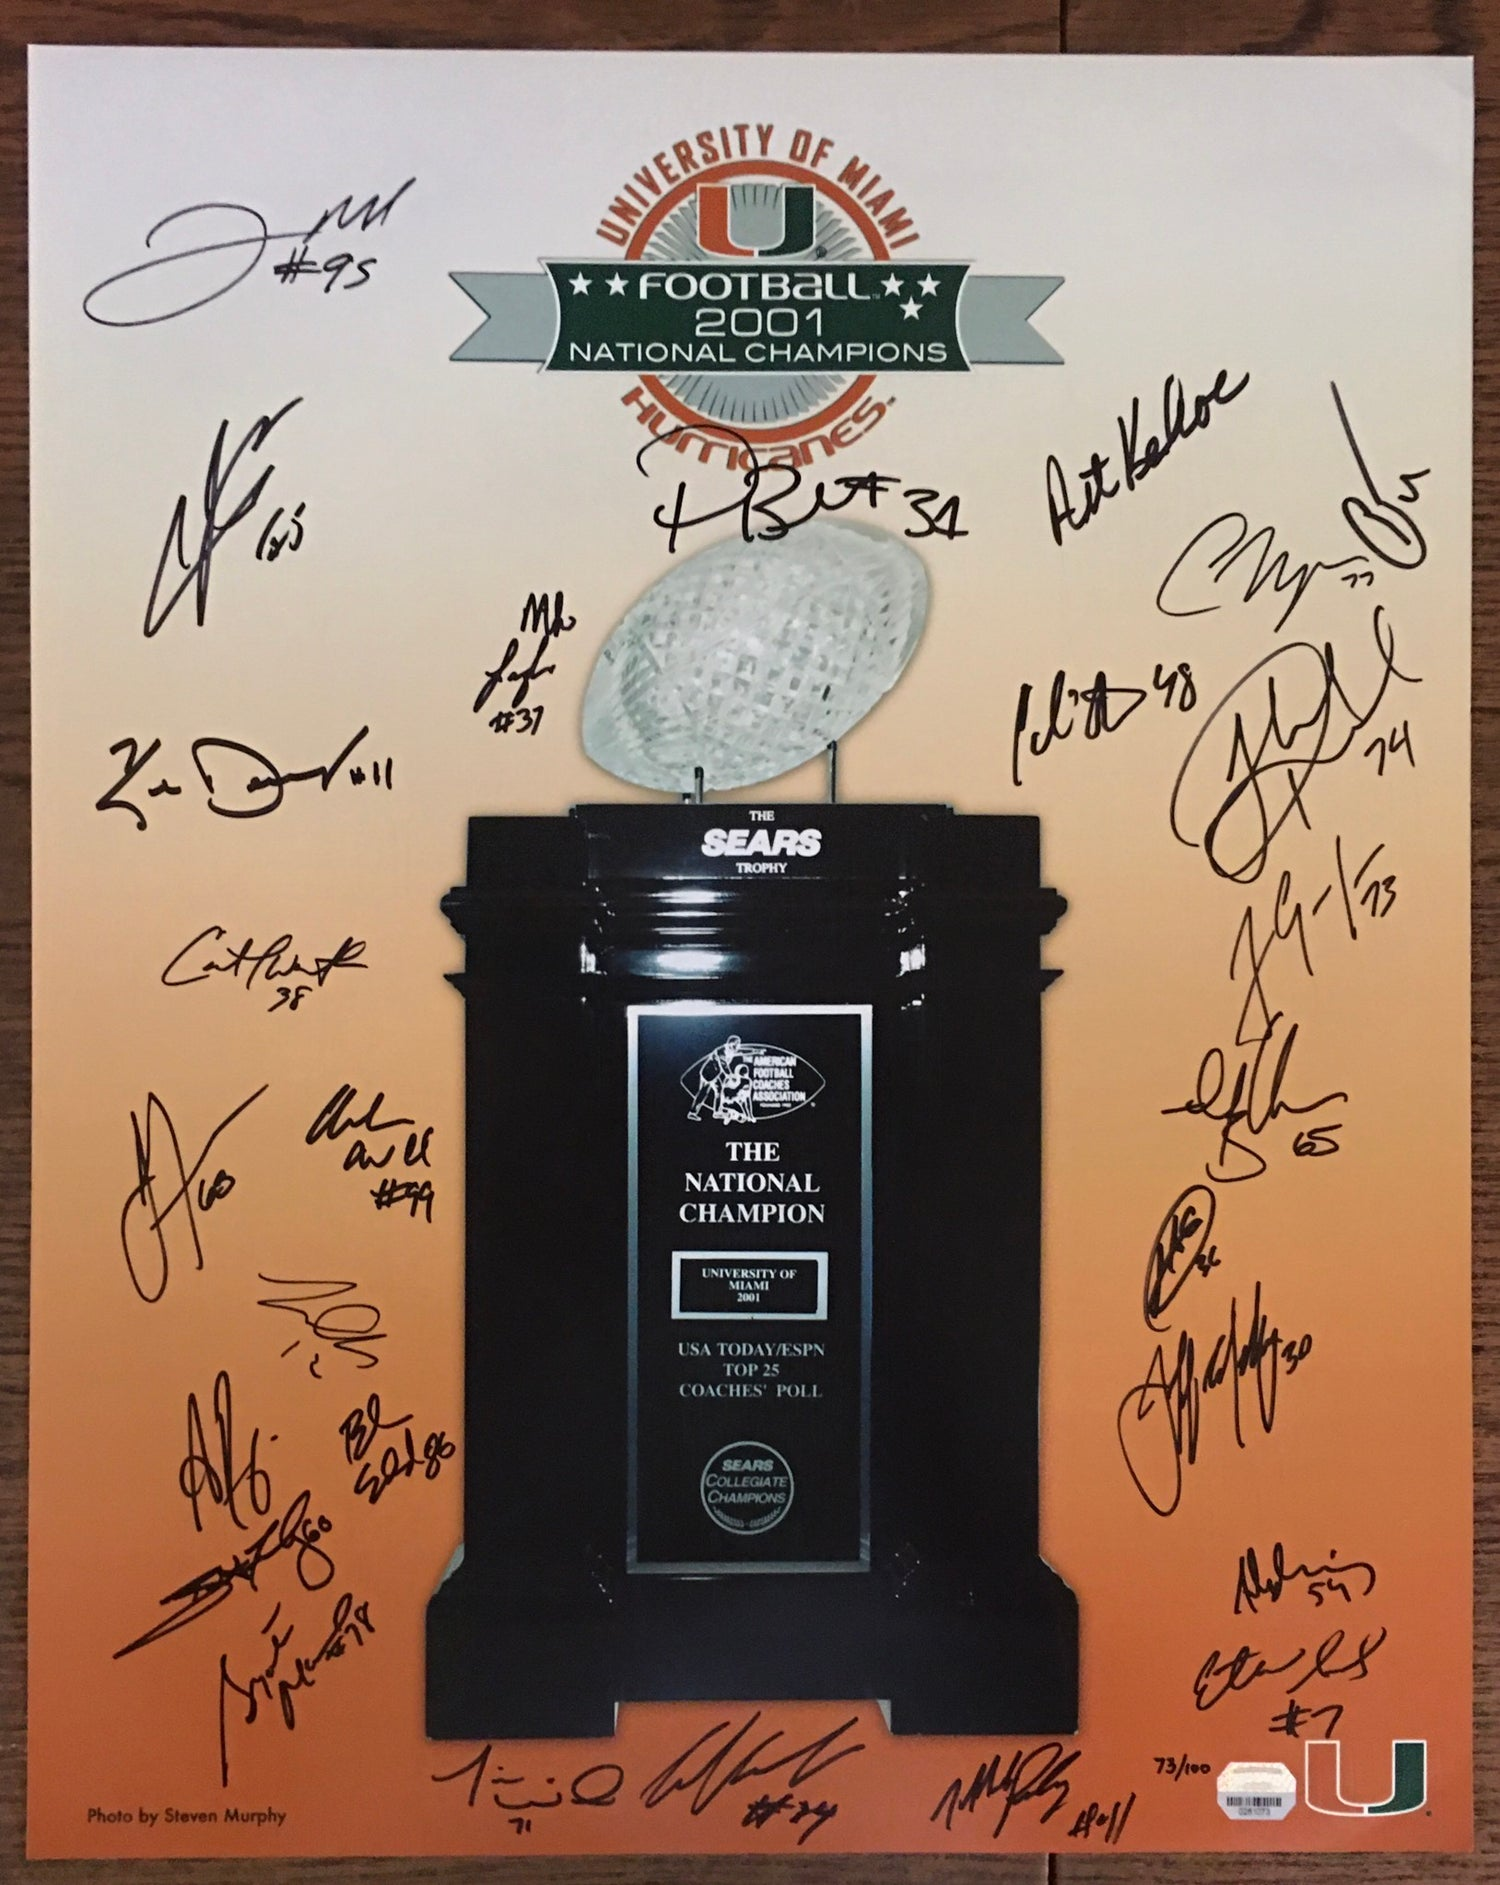 Image of Limited Edition 2001 National Champions 10-year Reunion Signed Poster